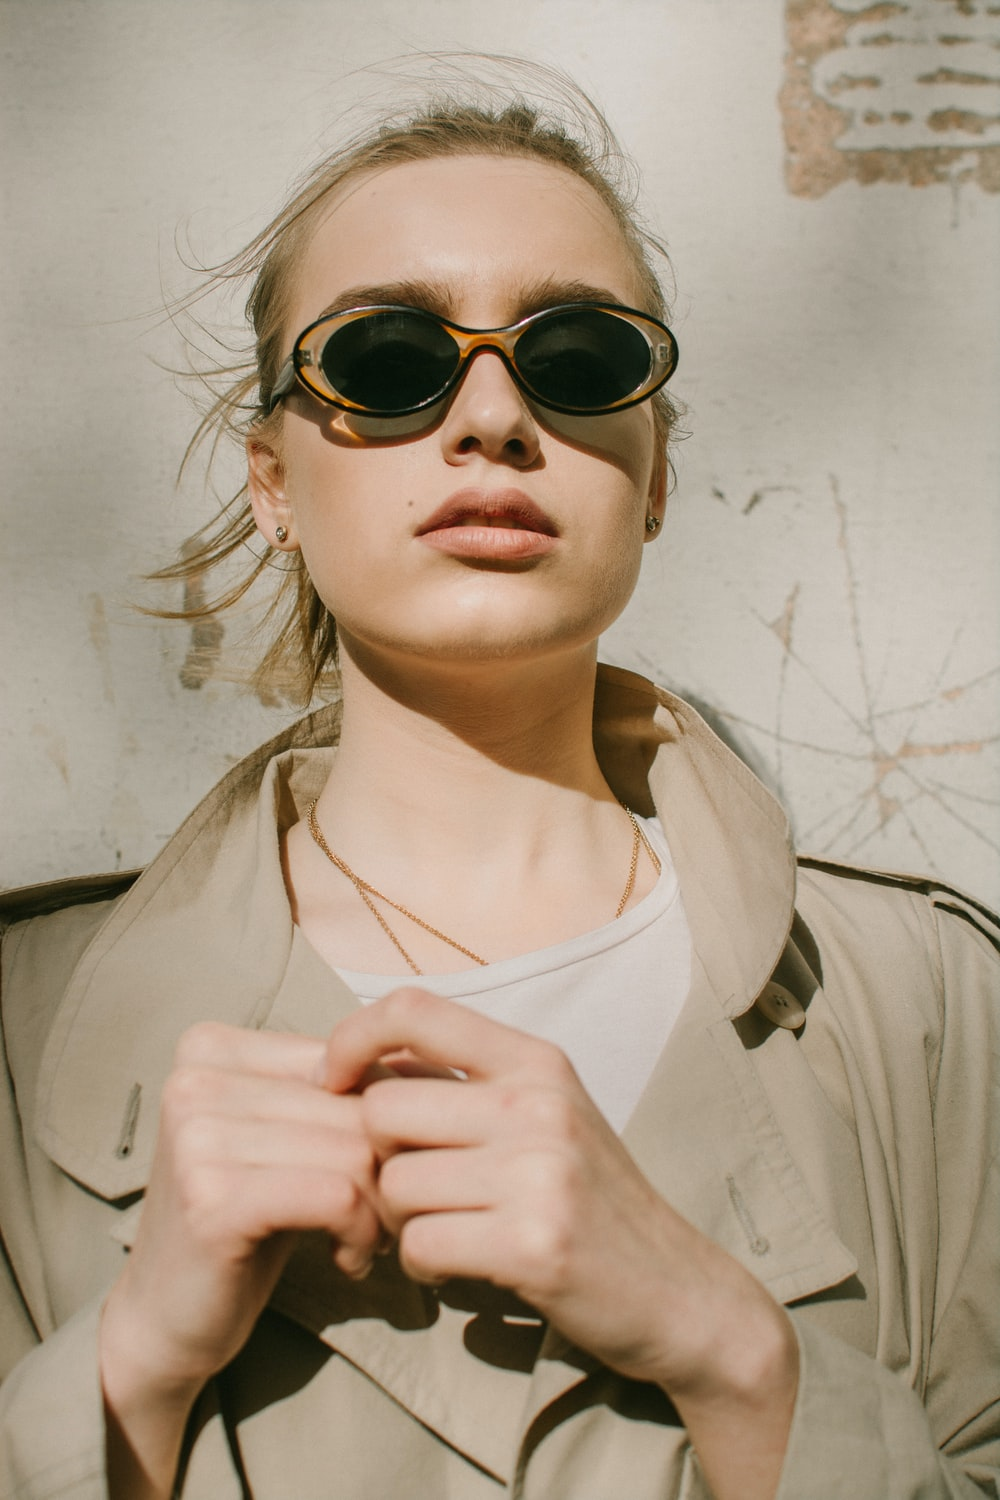 woman in brown coat wearing sunglasses